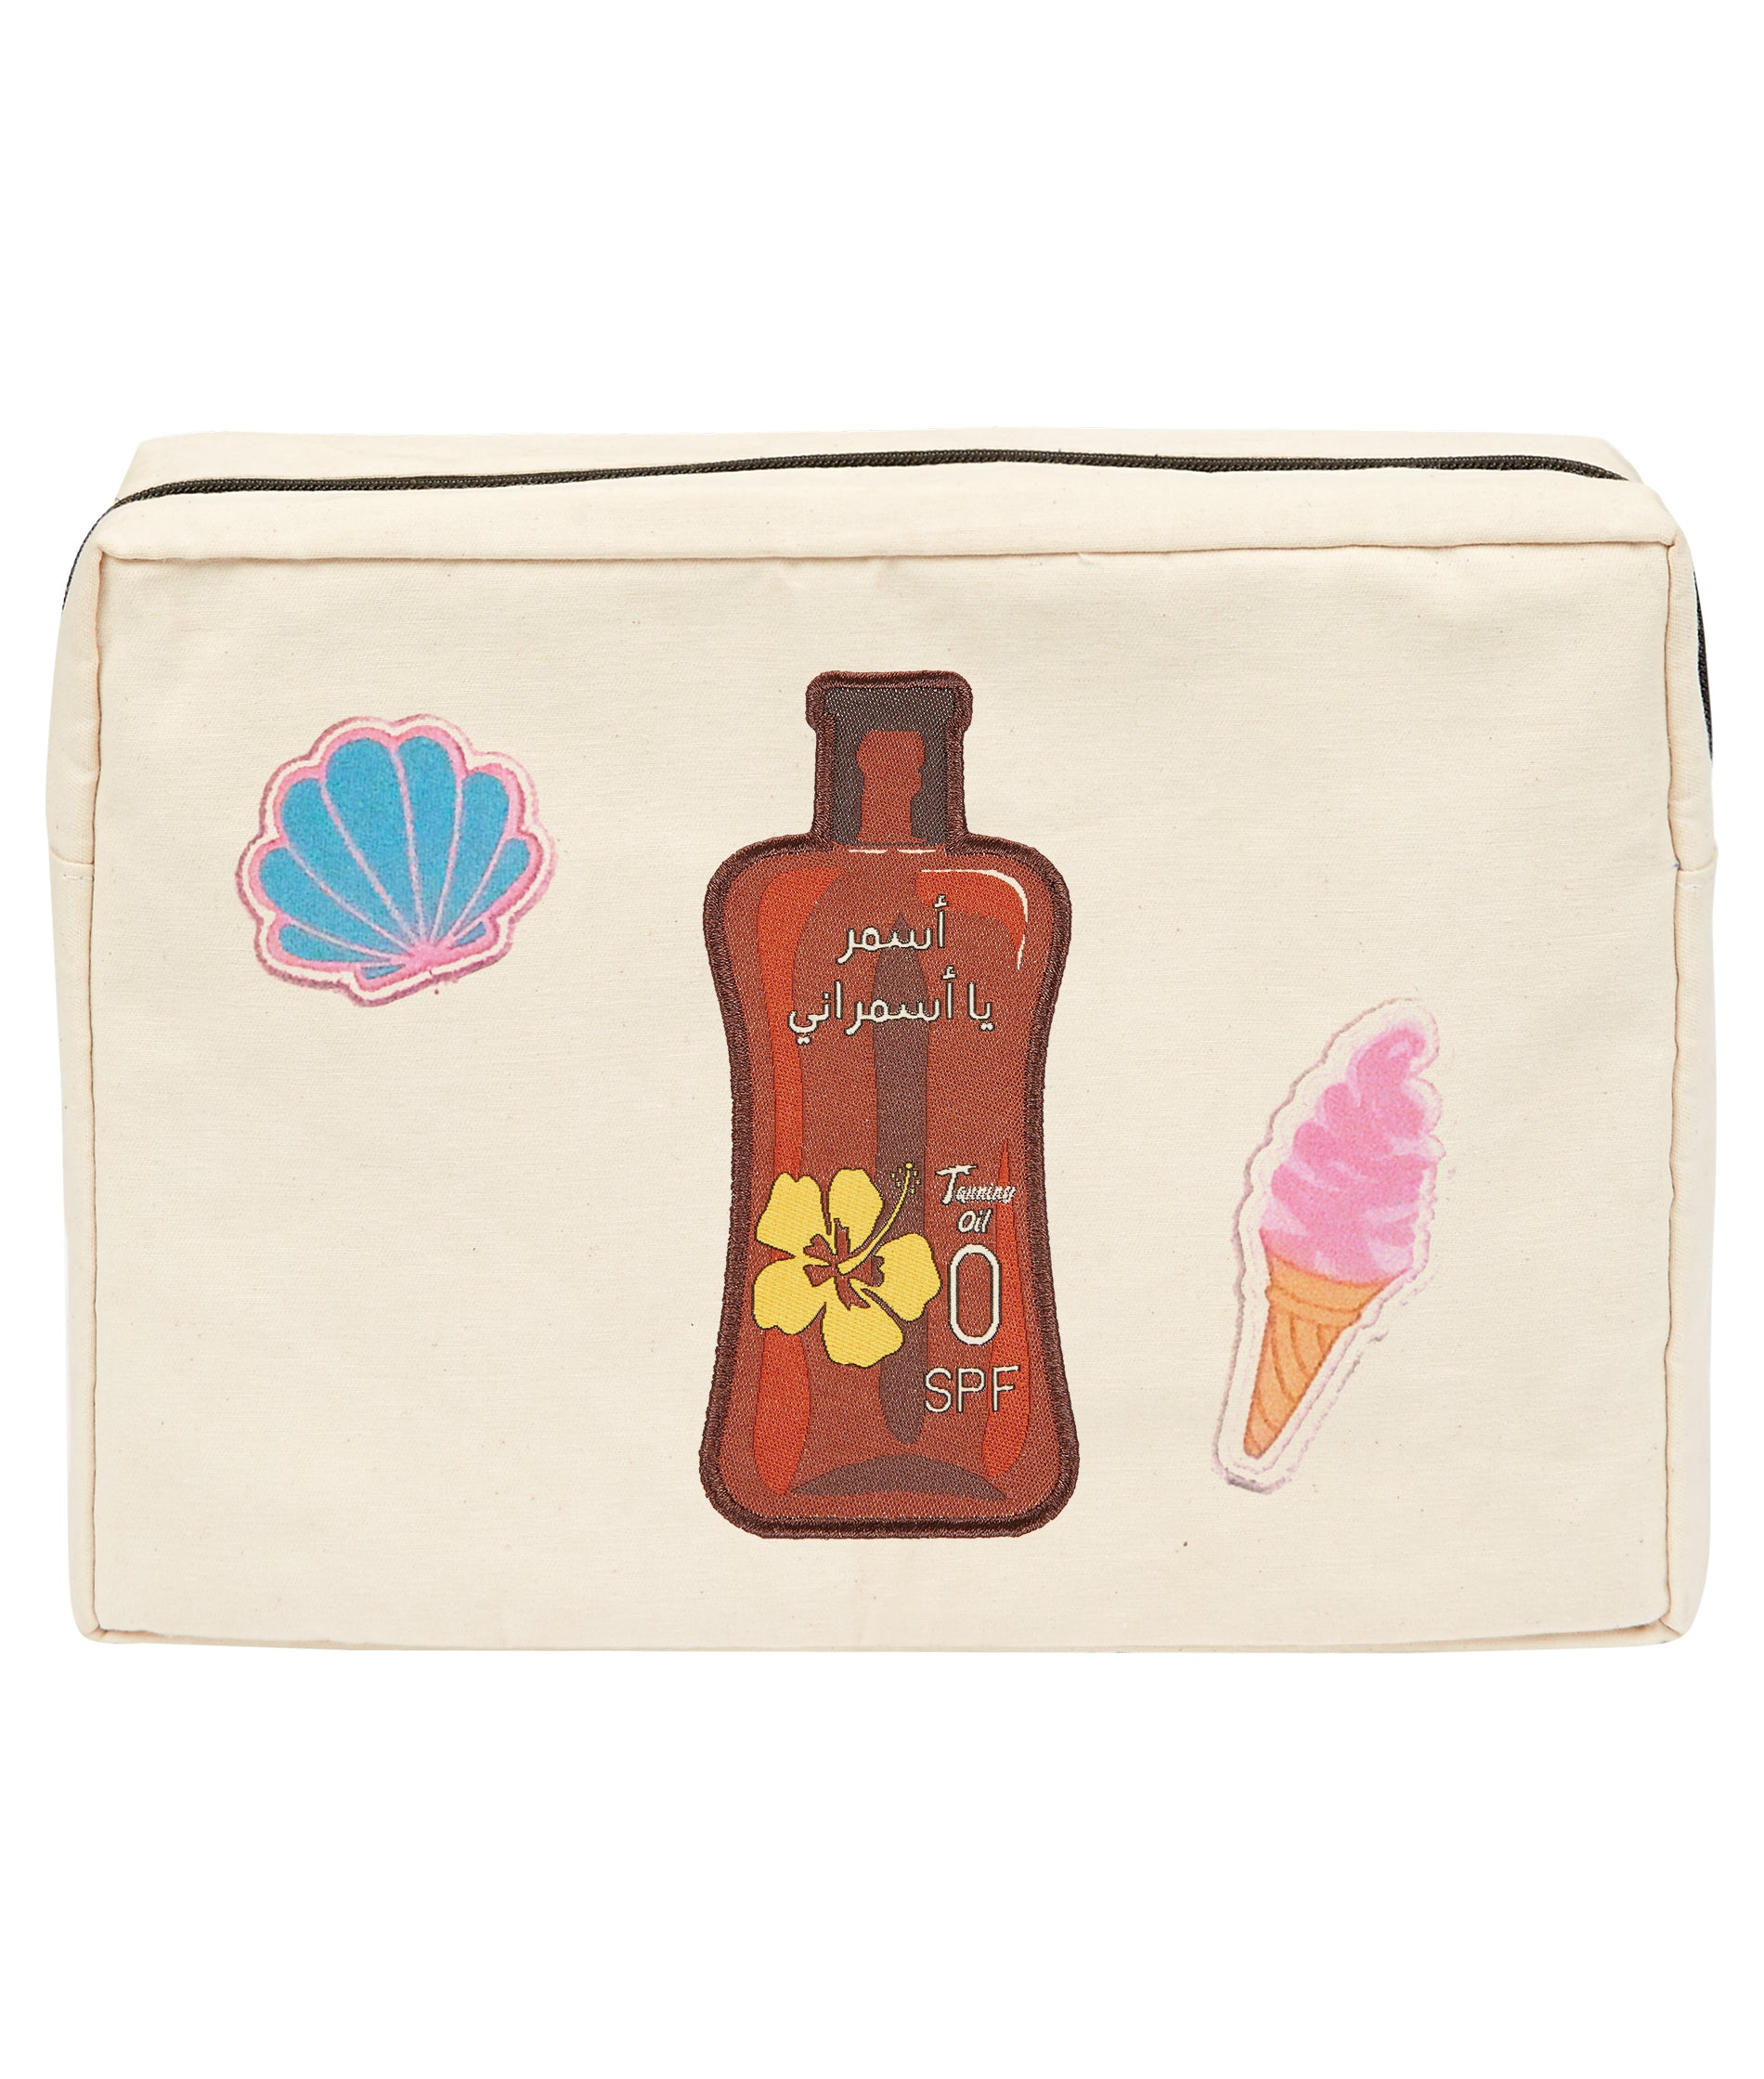 Tanning Oil Summer Bag